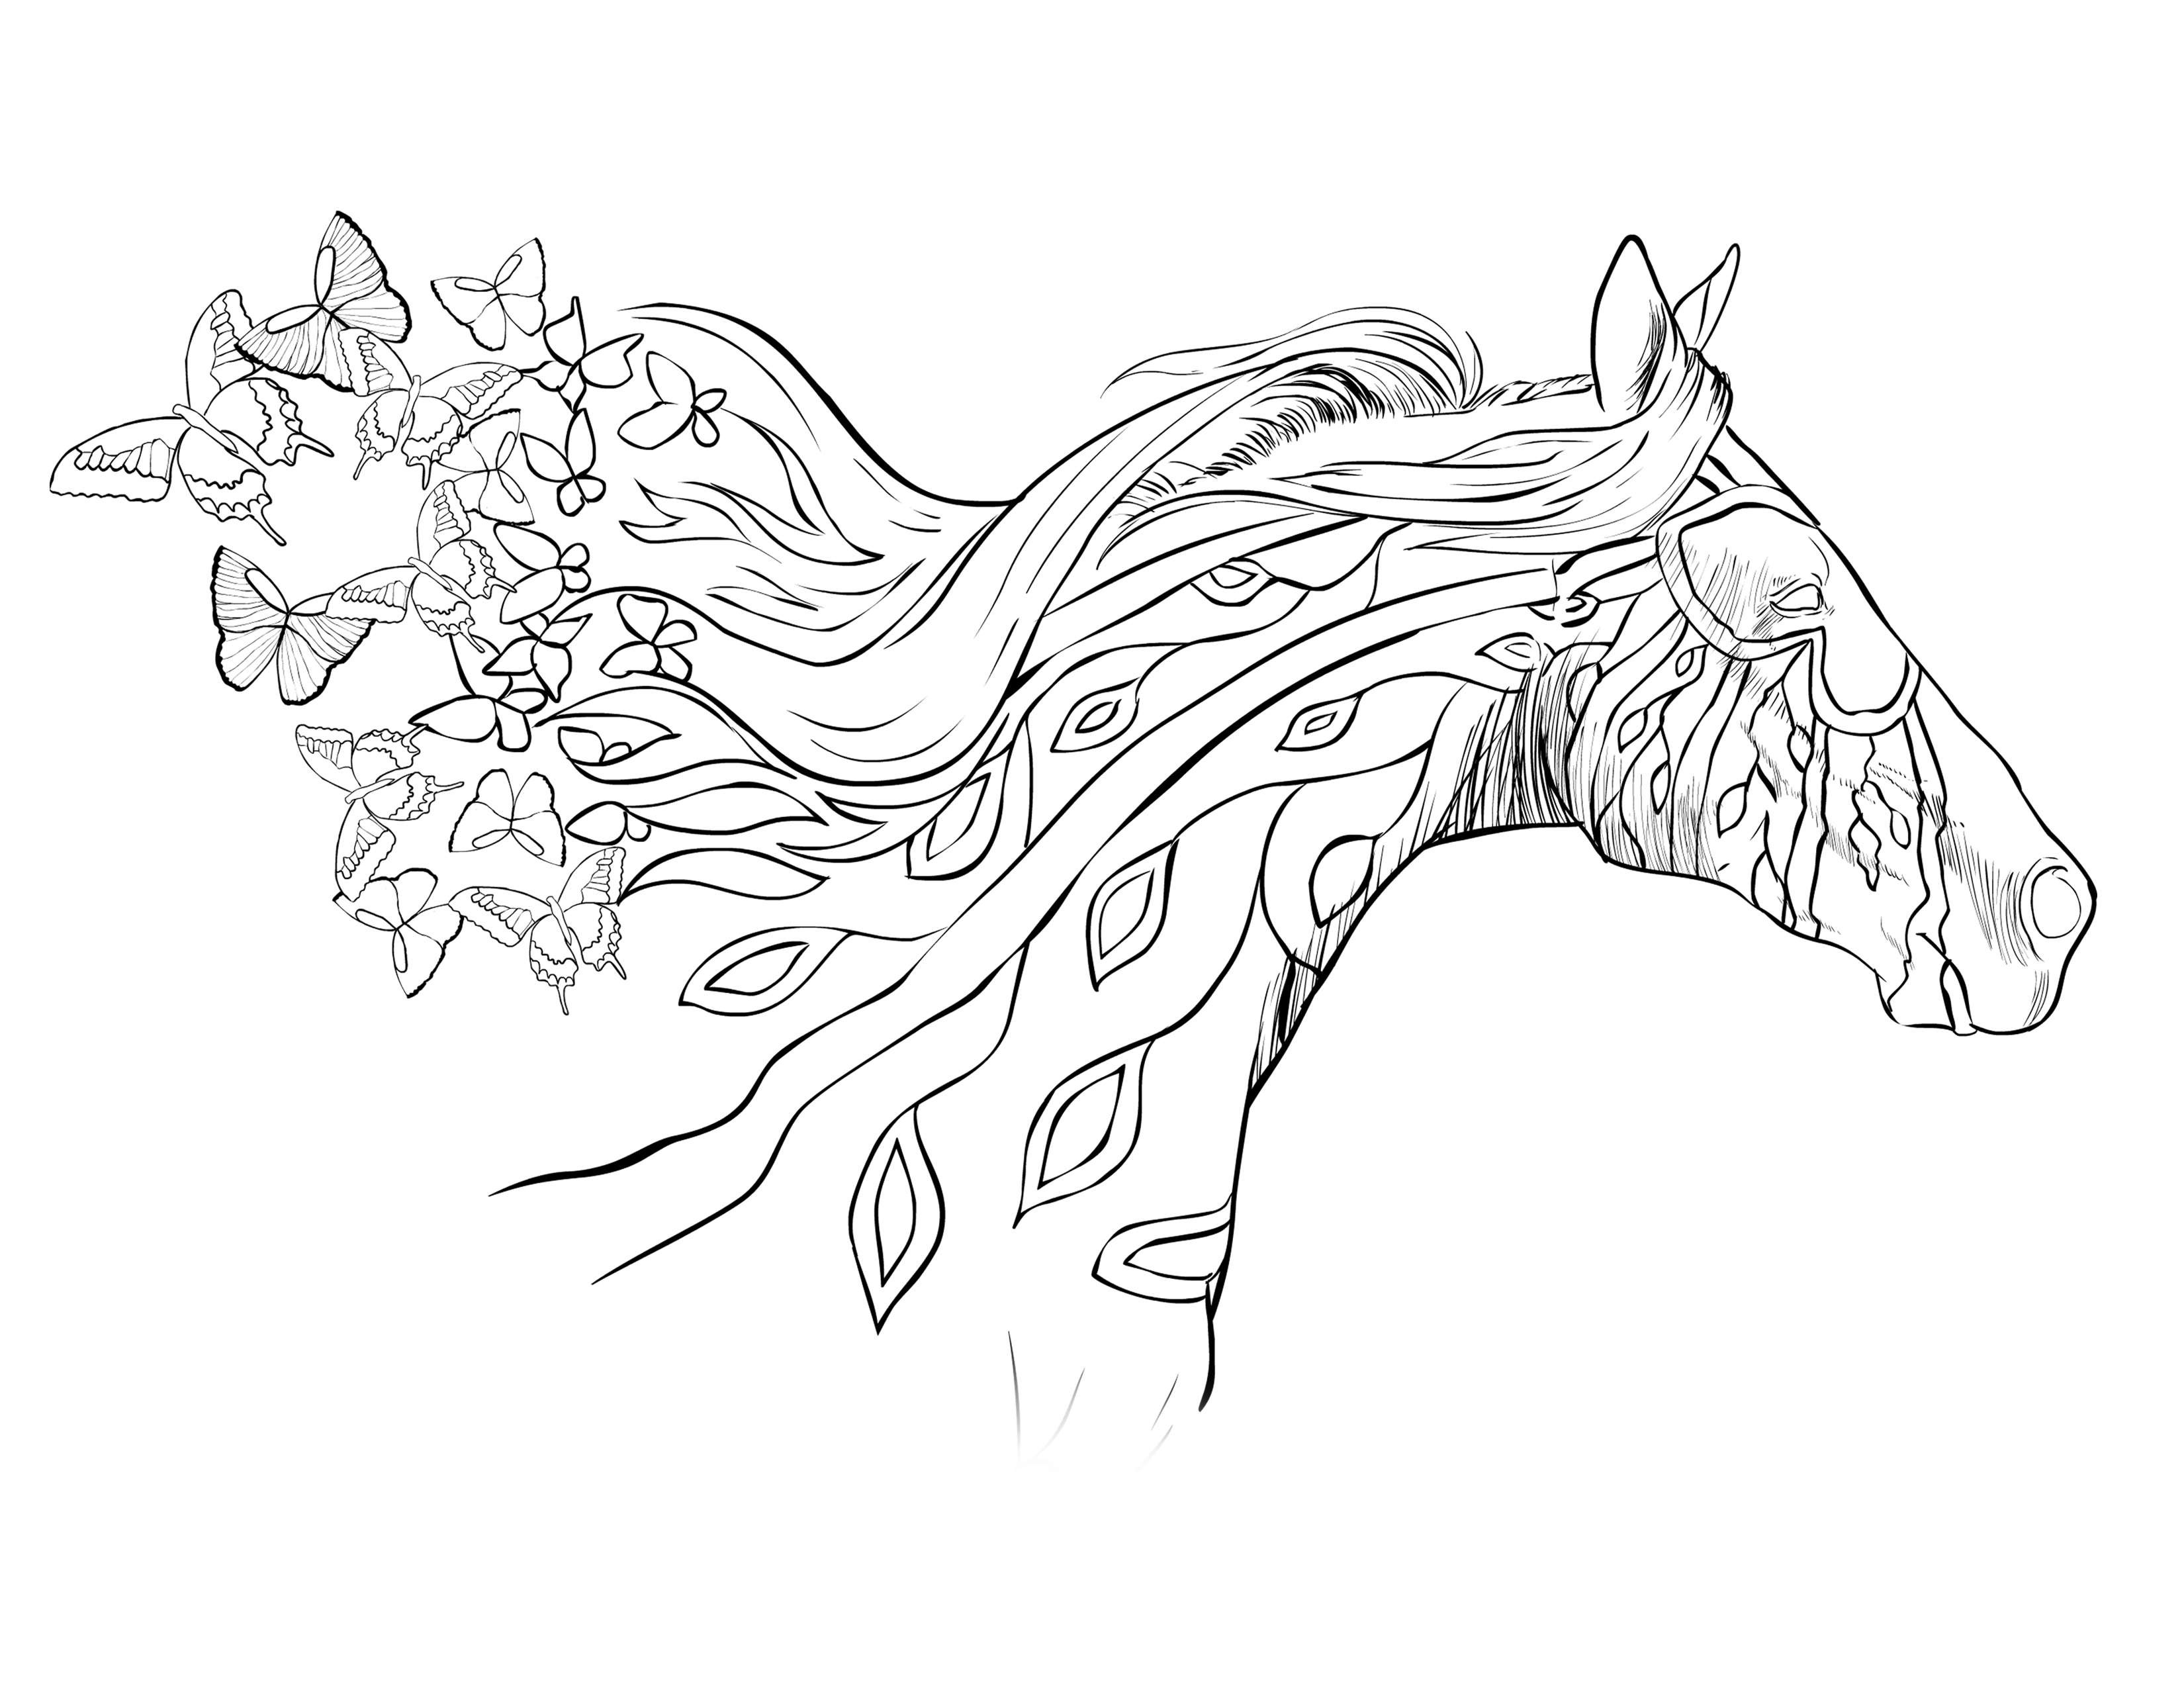 coloring page of horse horse coloring pages and printables coloring page horse of